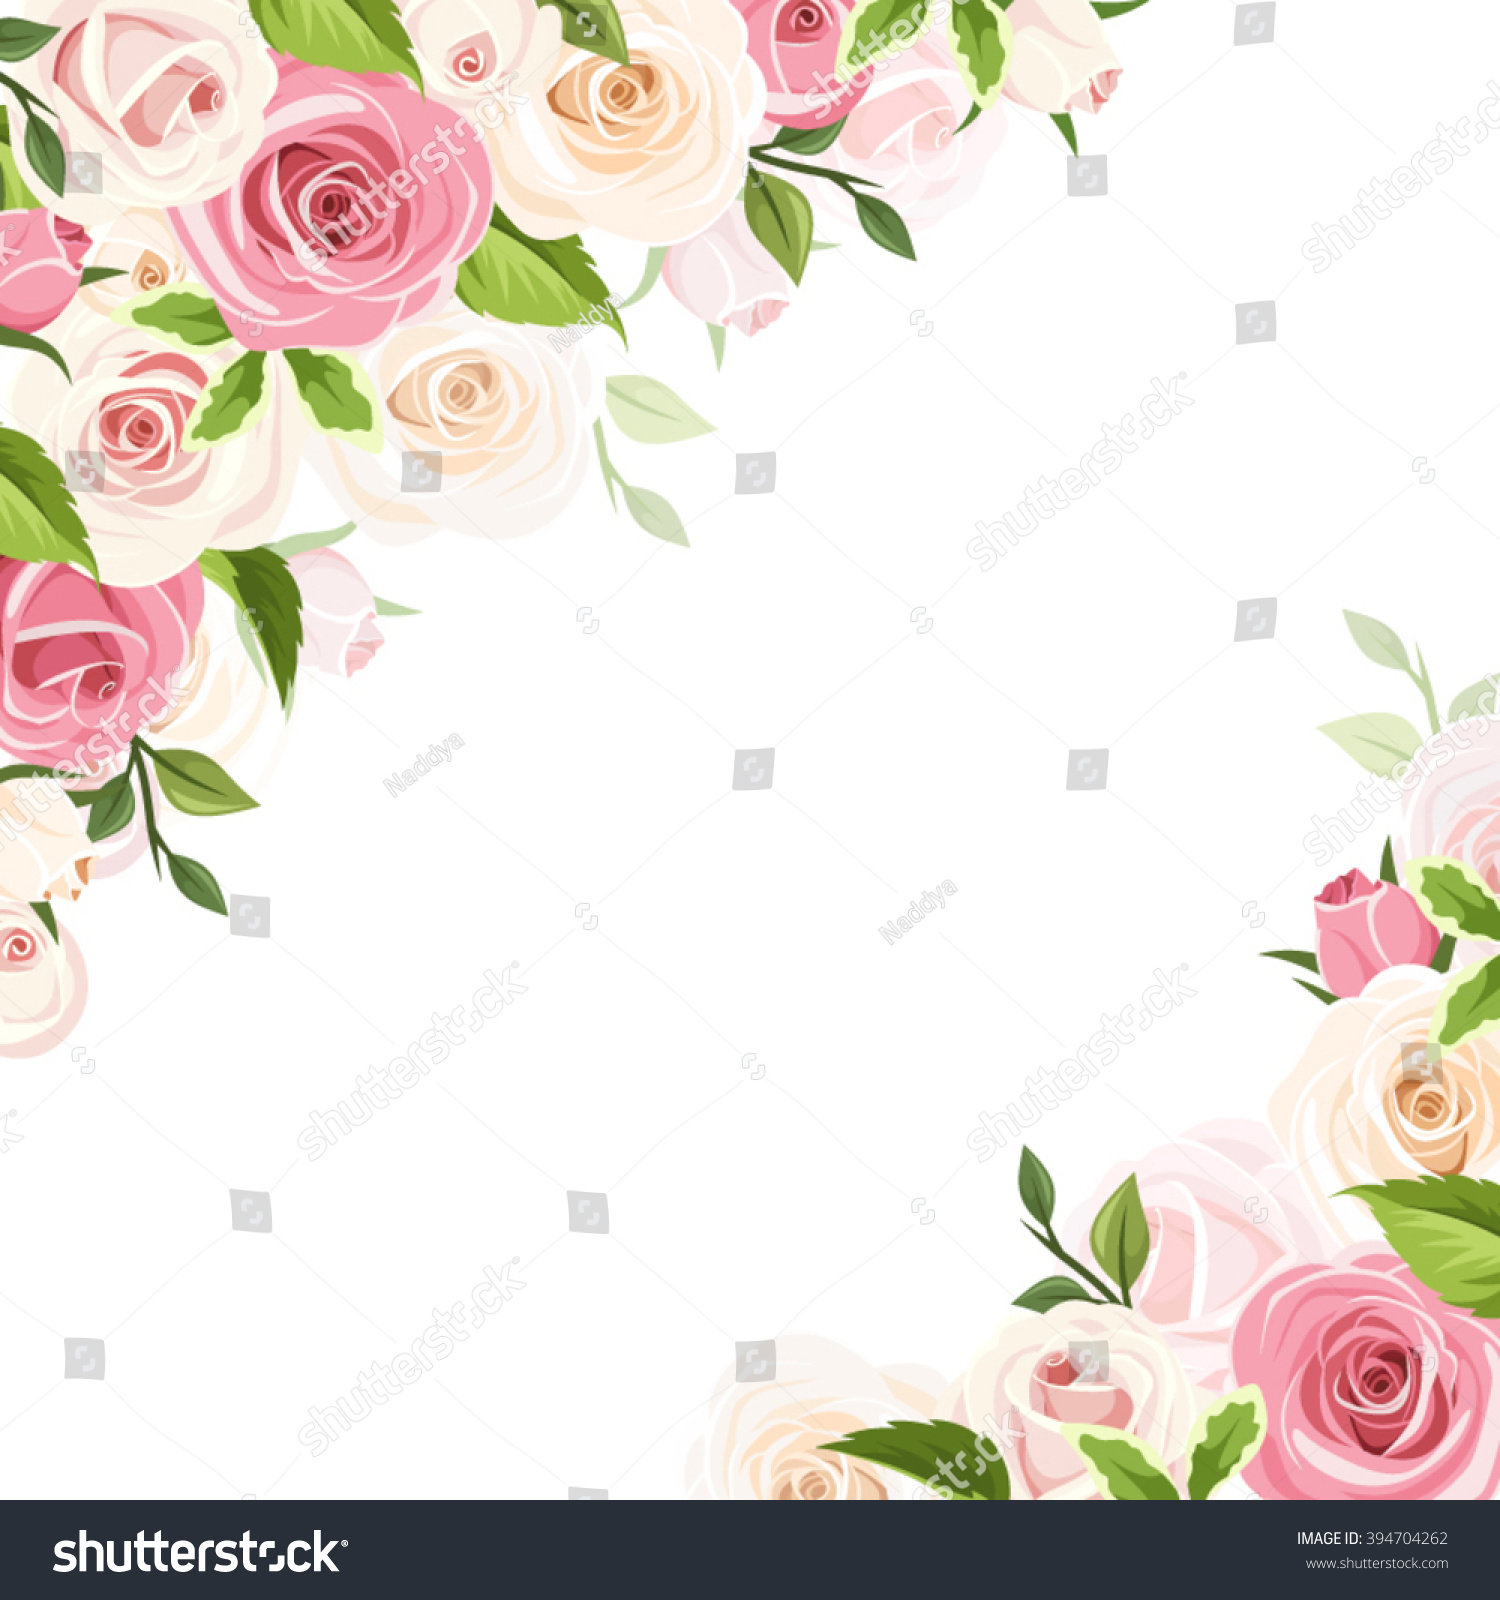 Vector White Background With Pink And White Roses And Green Leaves